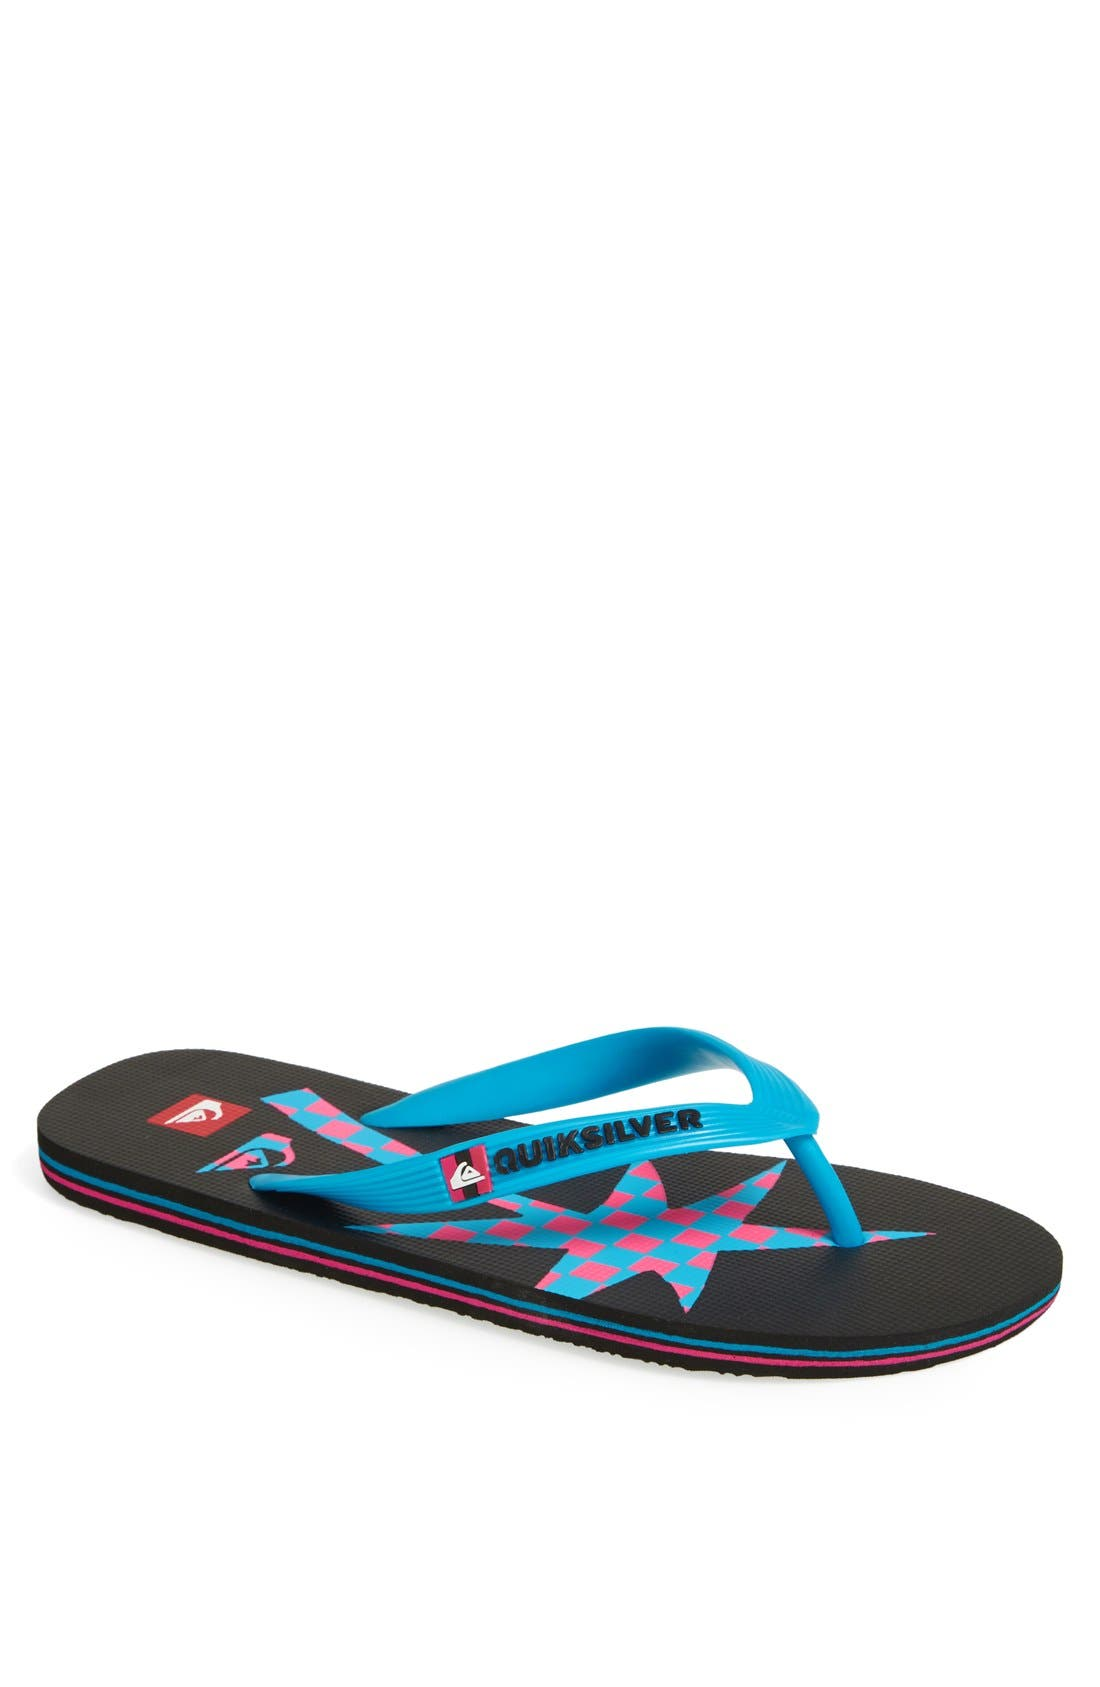 Alternate Image 1 Selected - Quiksilver 'Molokai' Flip Flop